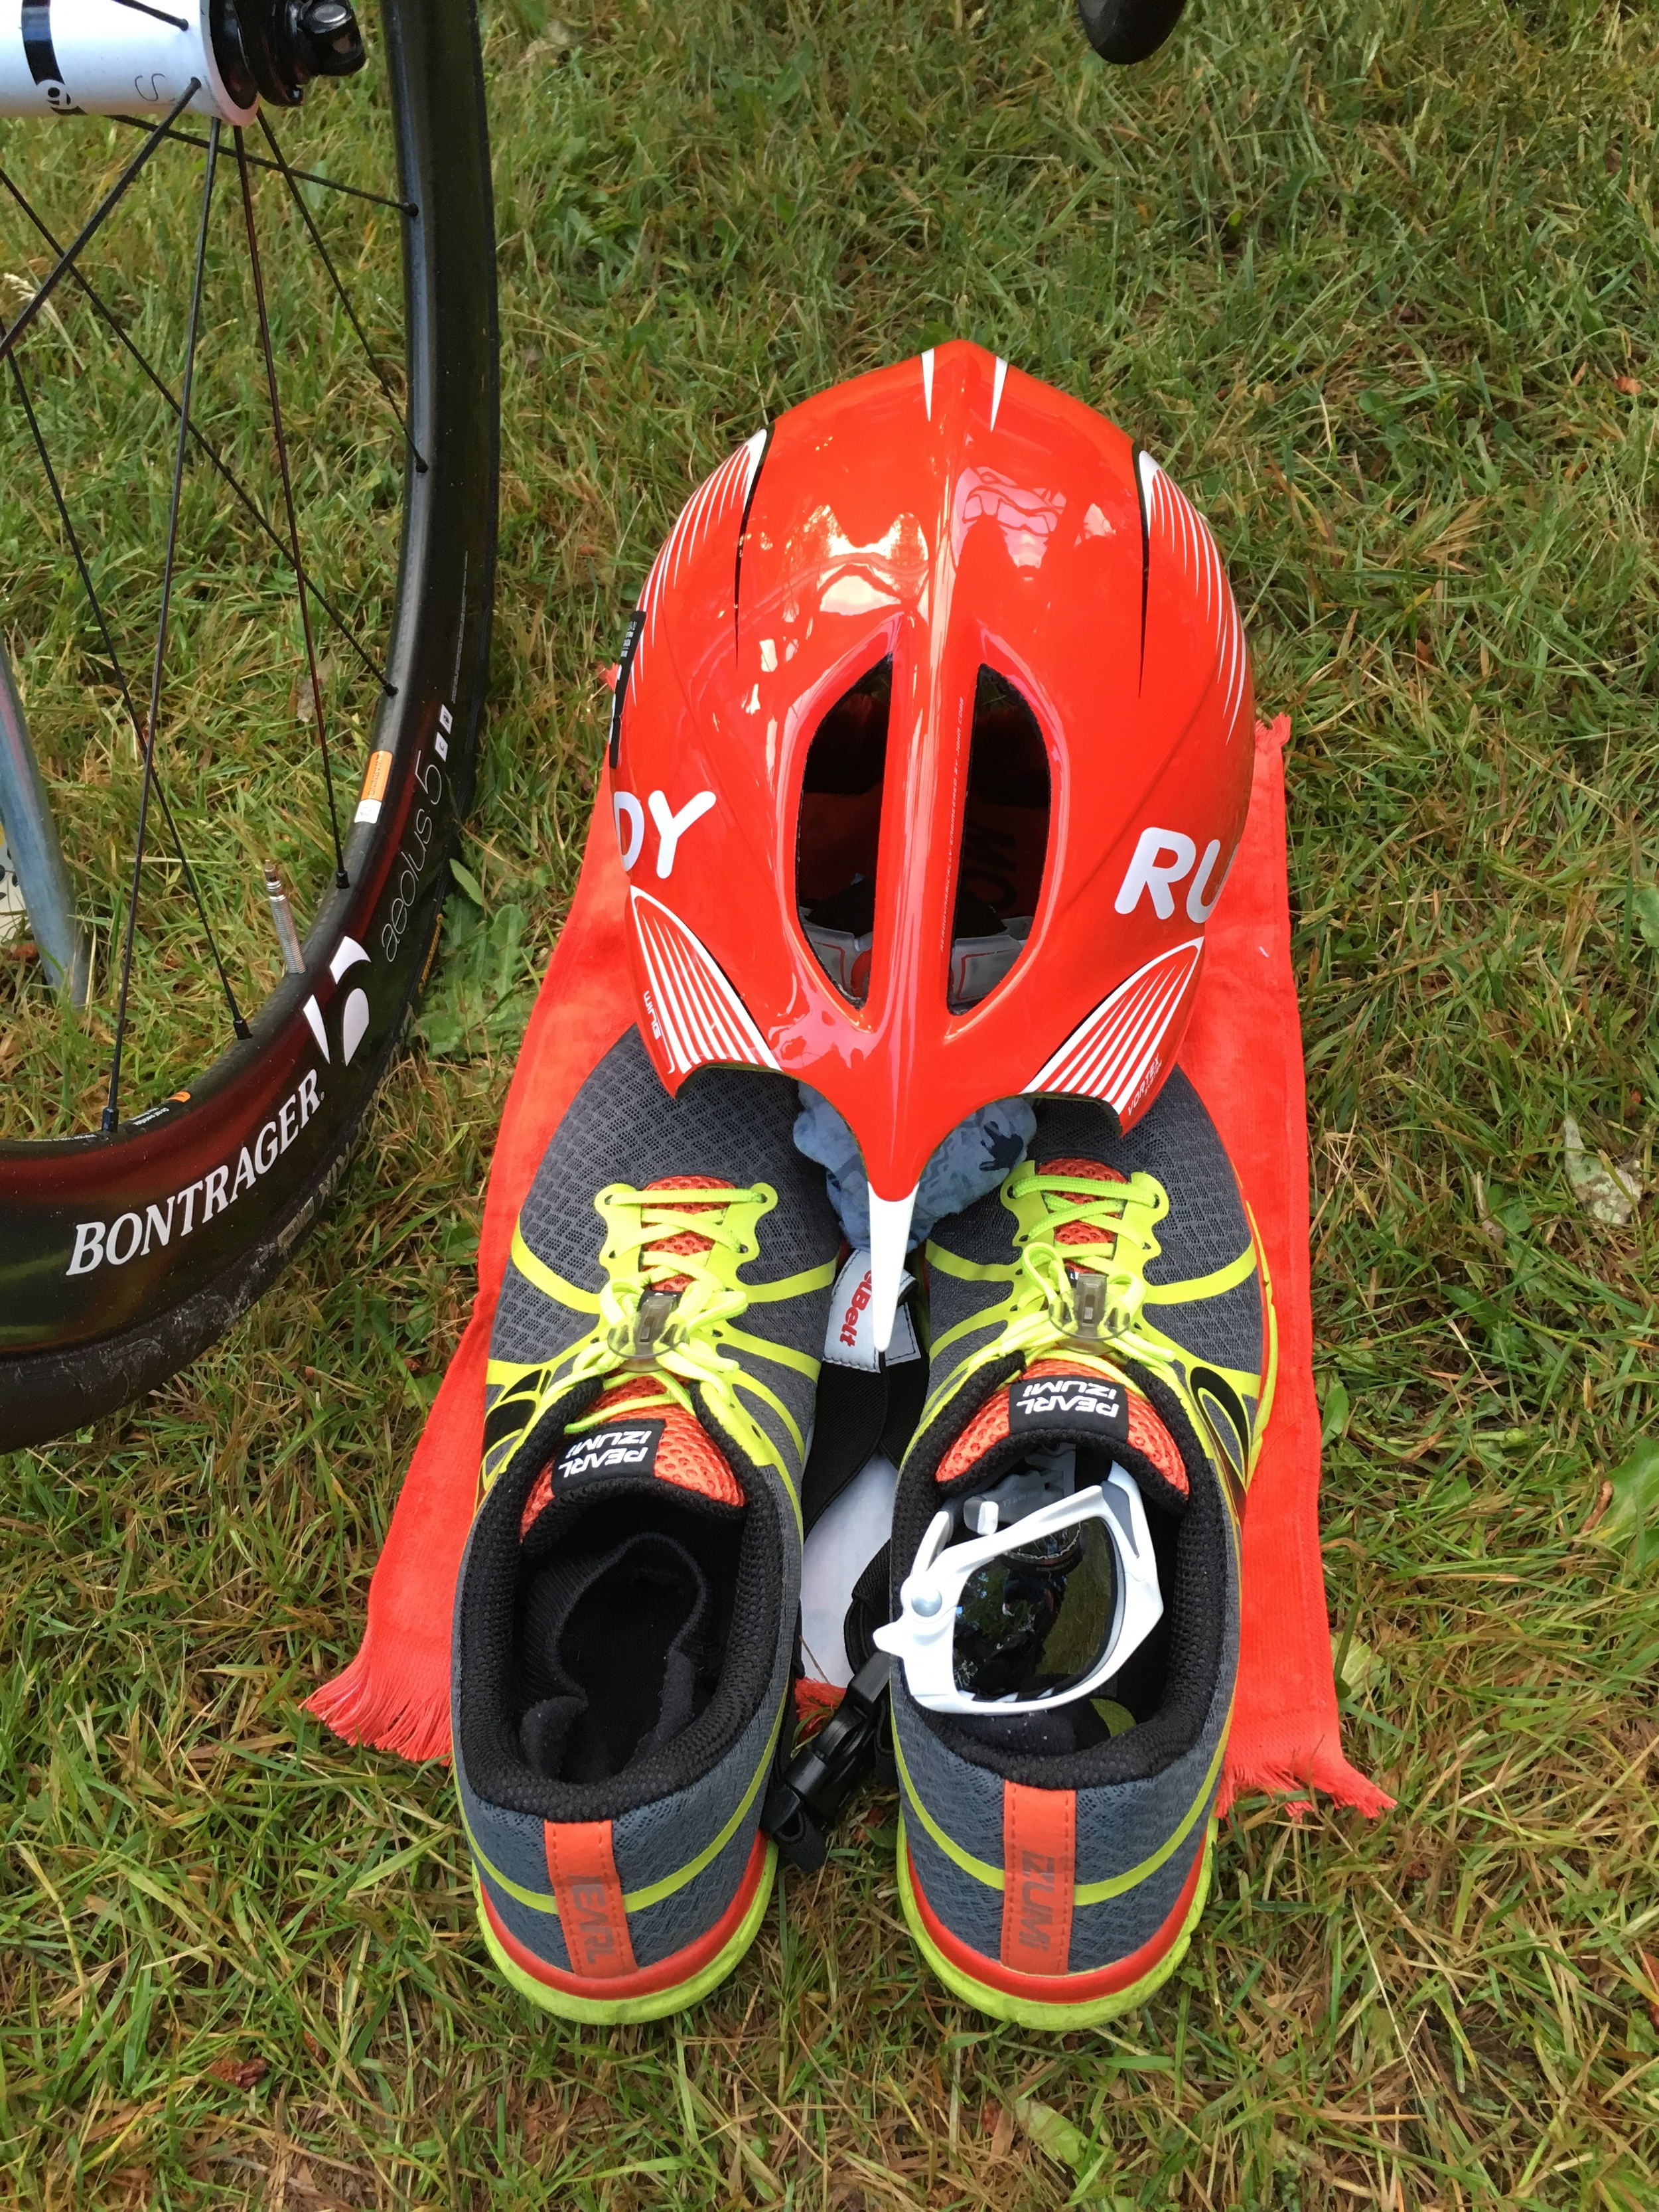 T1: wetsuit off, helmet on and go! T2: helmet off, socks + shoes on, grab race belt + sunnies and go!